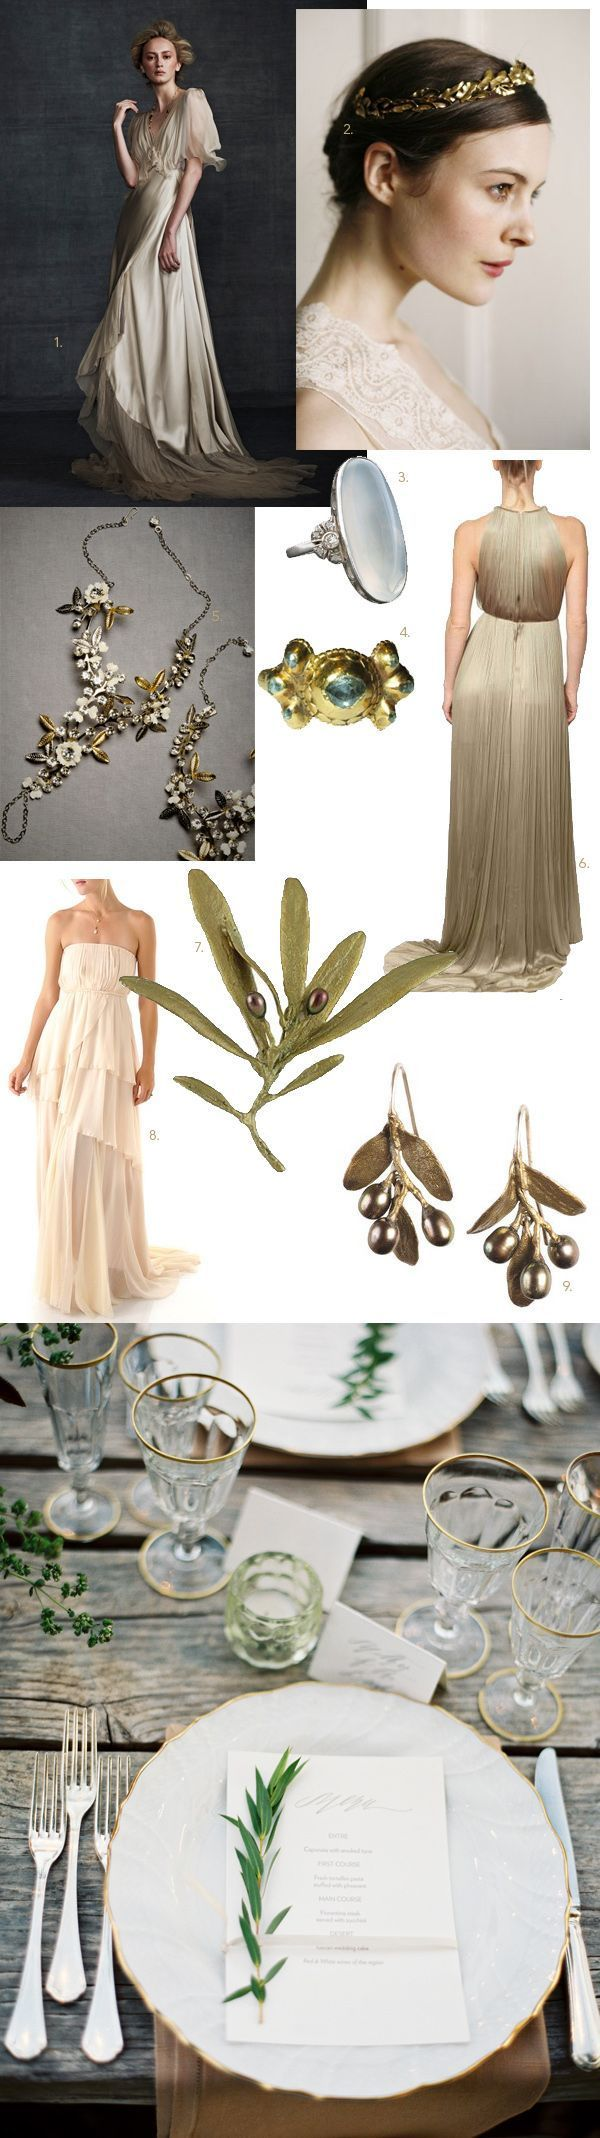 Greek Goddess Wedding Roundup